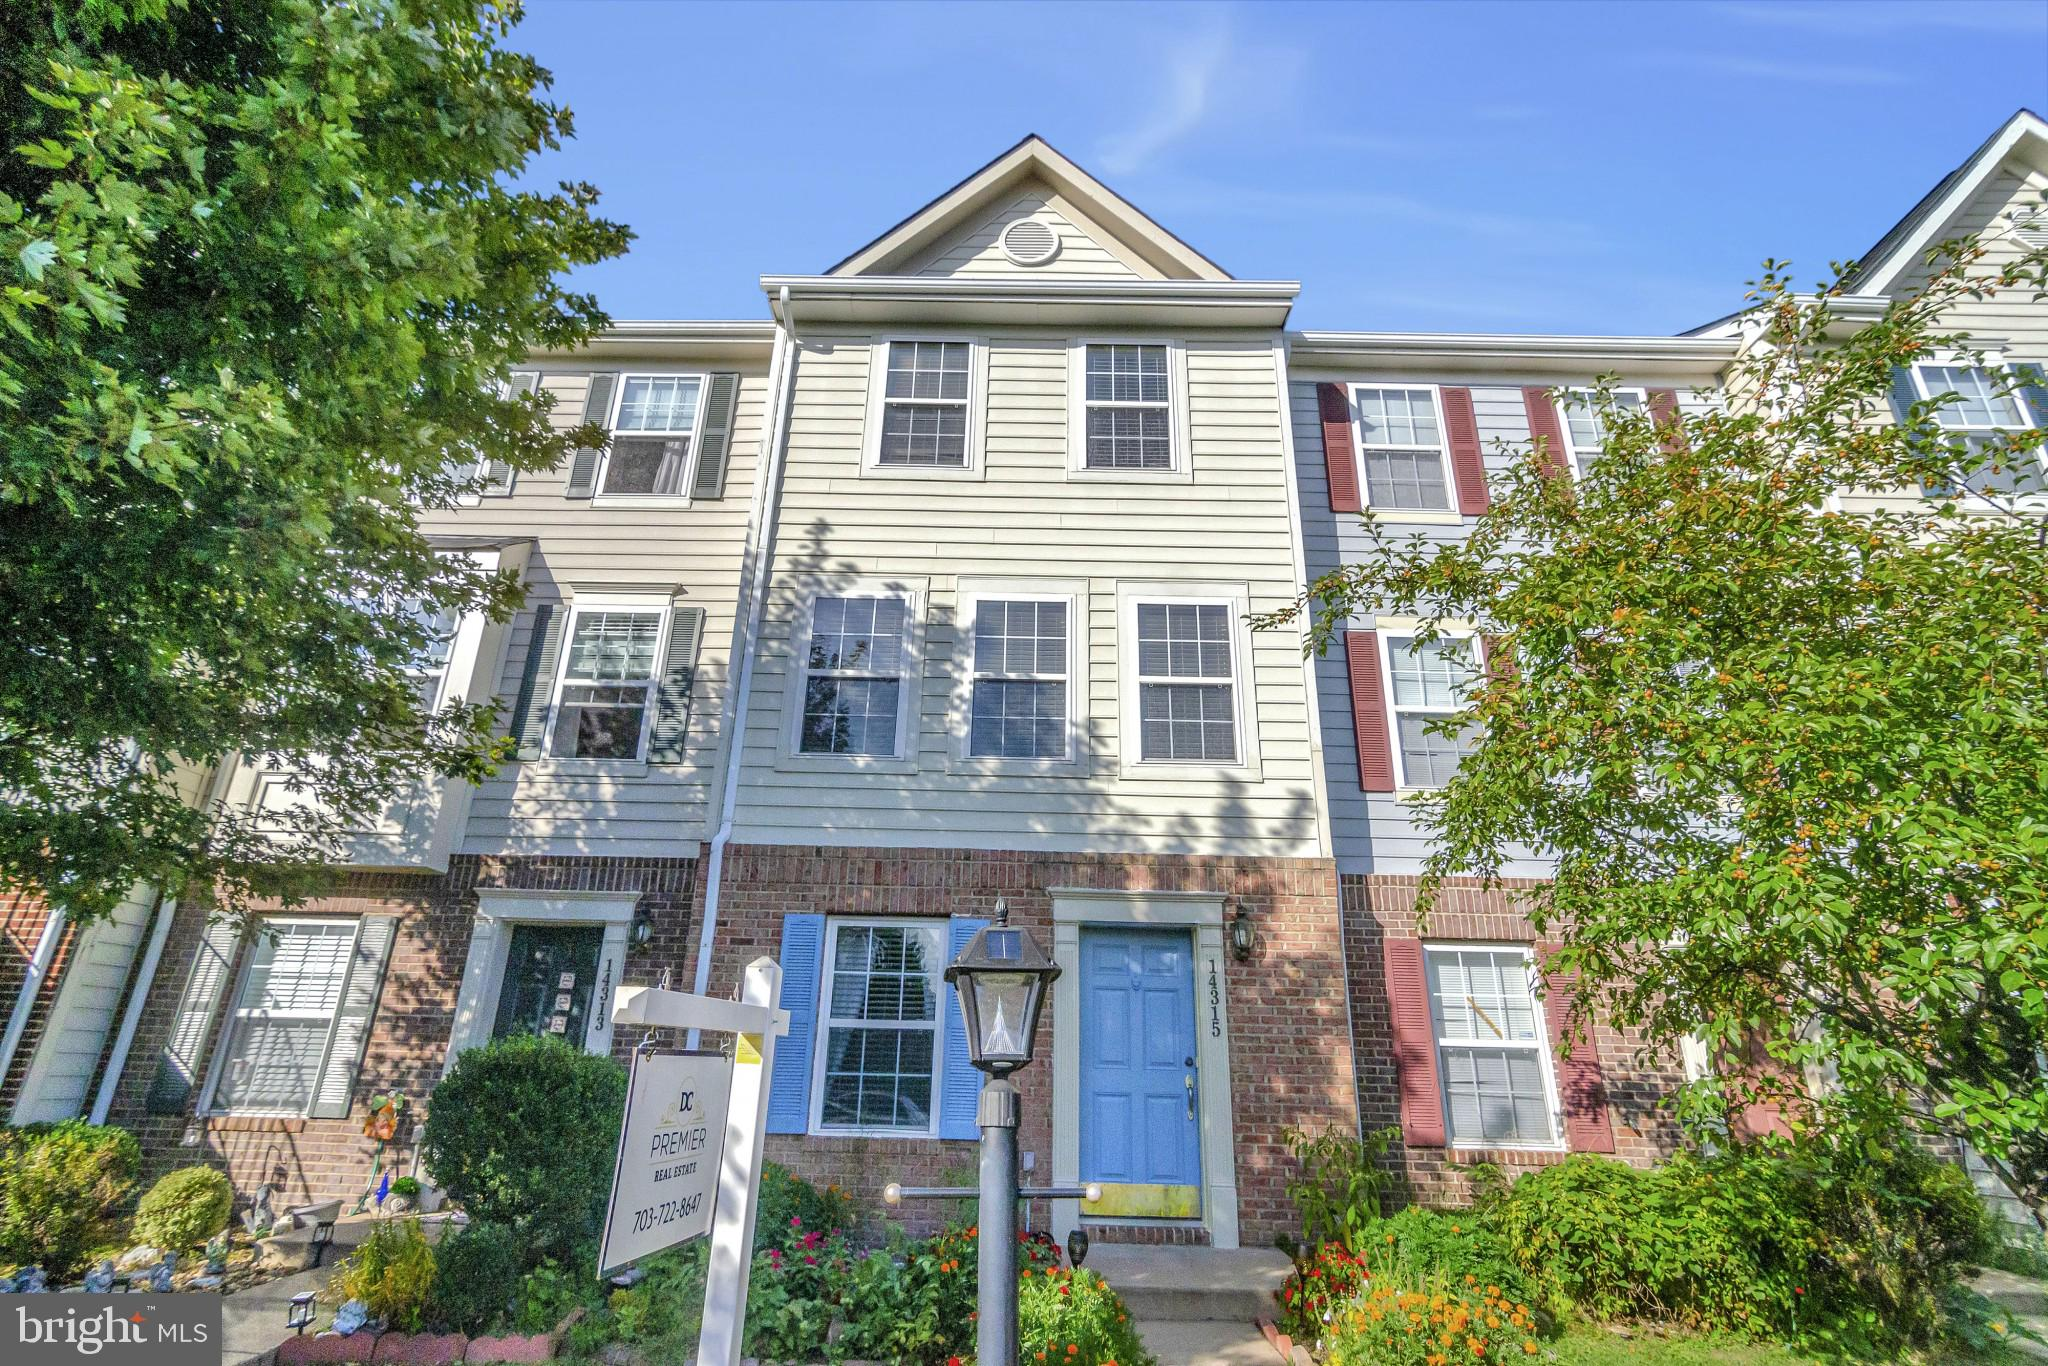 Lovely 3 bedroom, 3 bath townhome in the sought-after family community of Crossroads Village. Hardwo